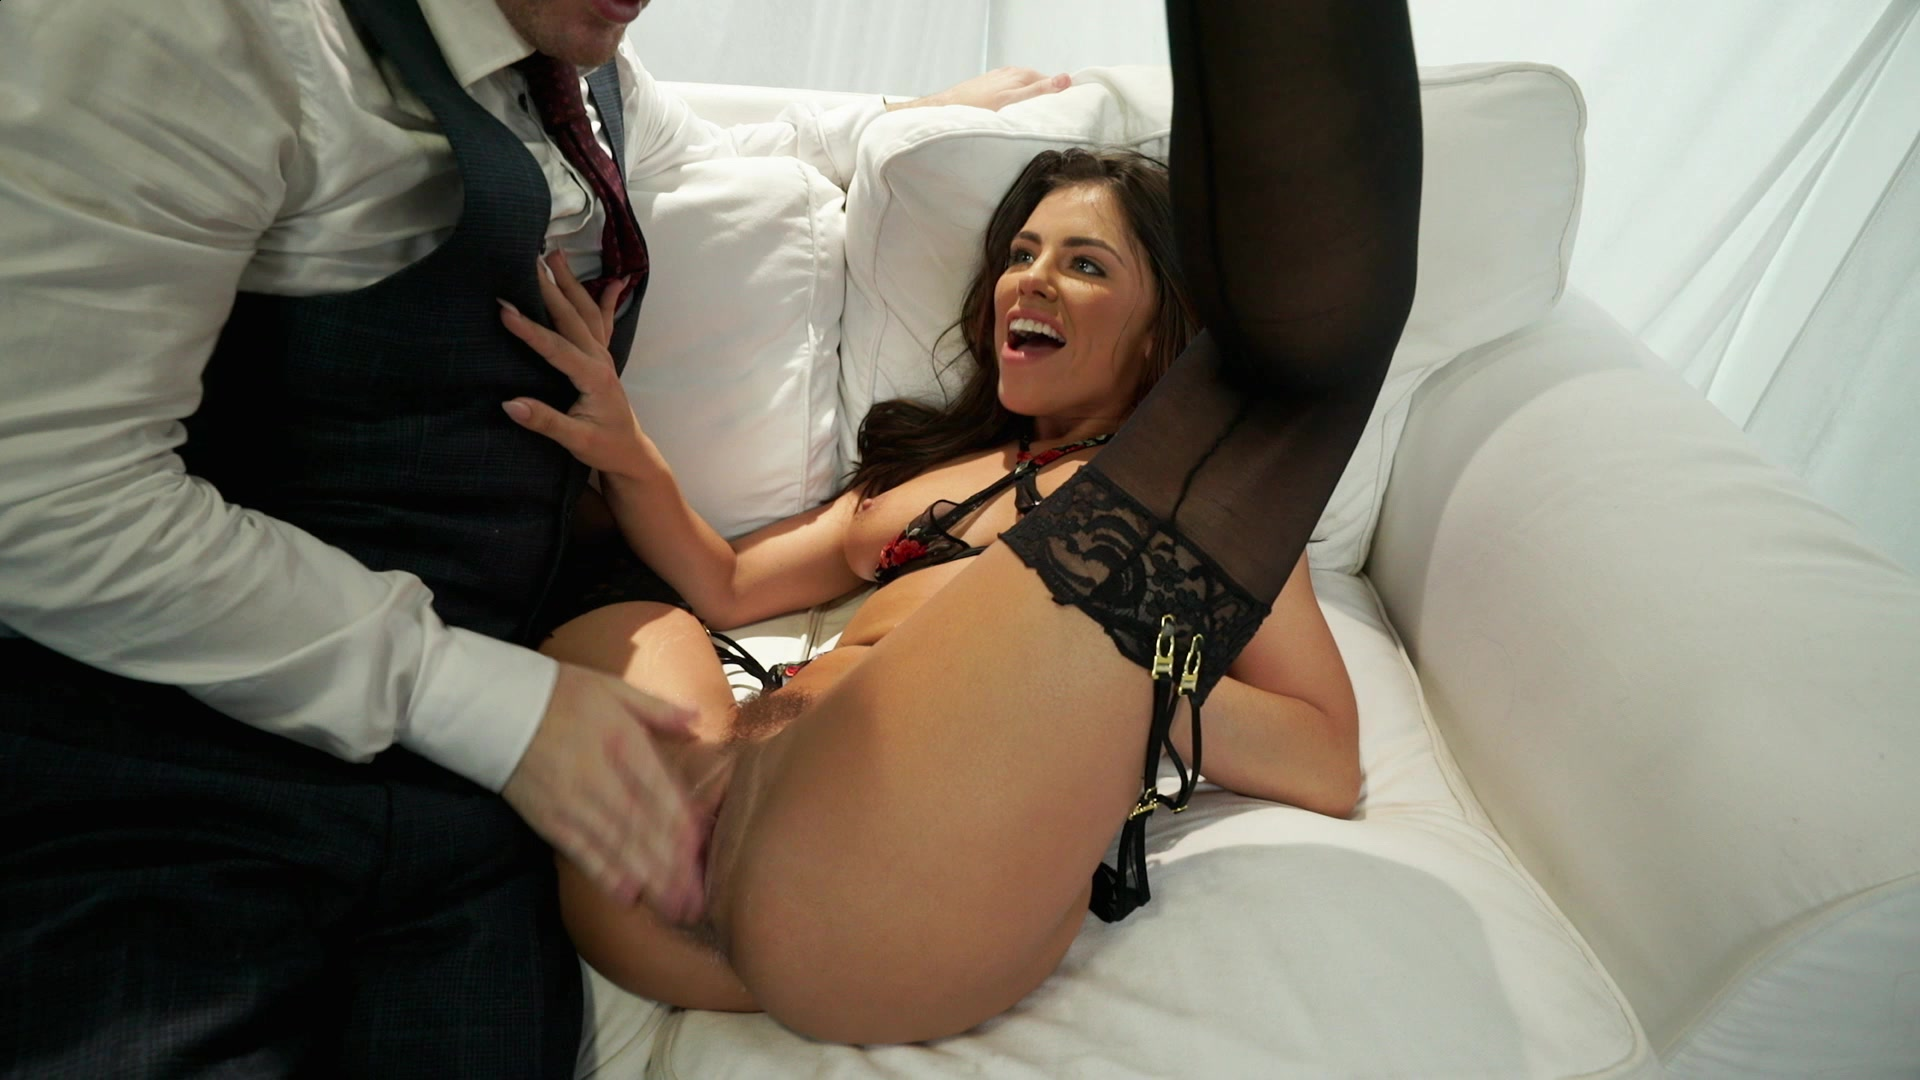 Scene with Adriana Chechik - image 12 out of 20